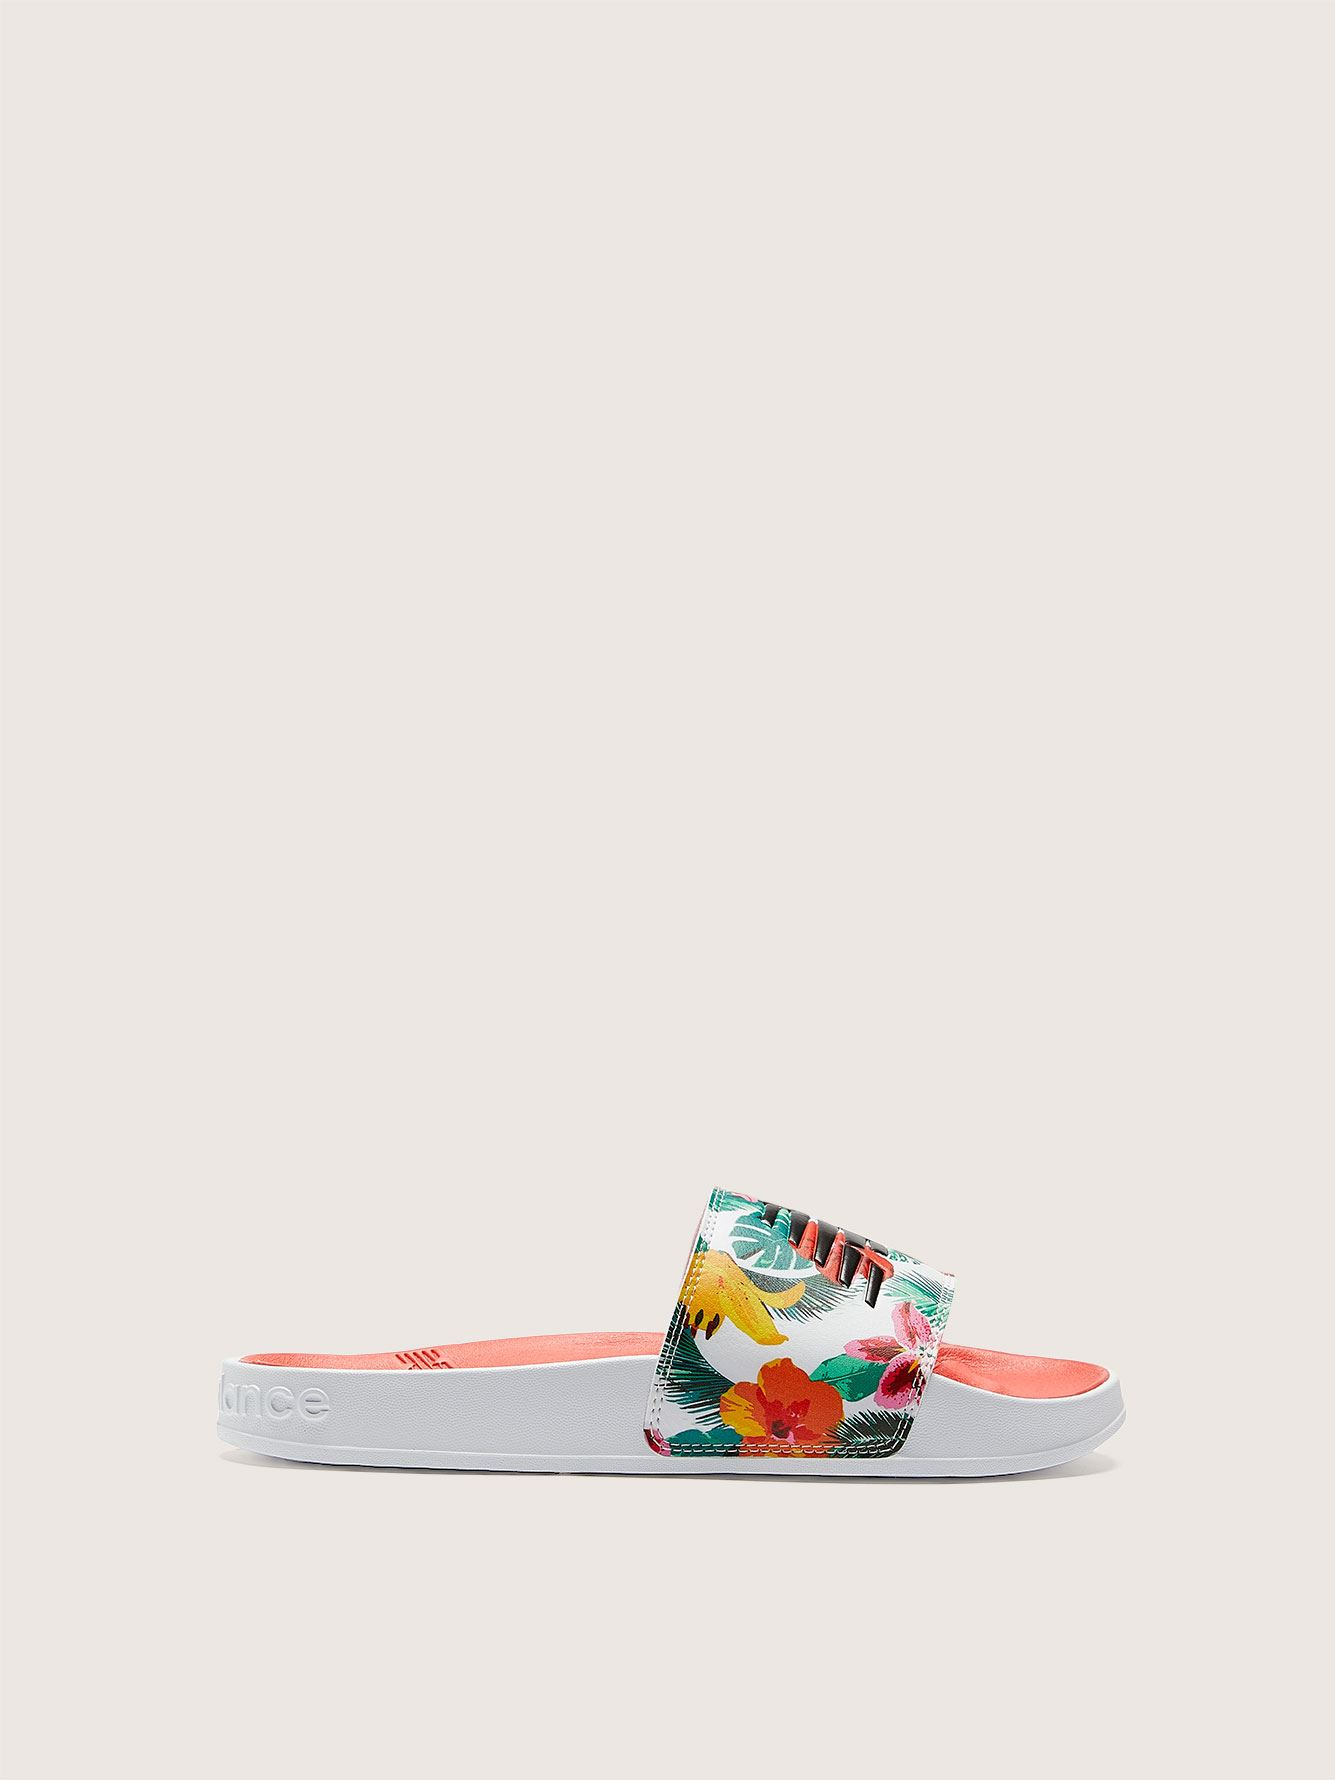 Printed Pool Slide Sandal - New Balance